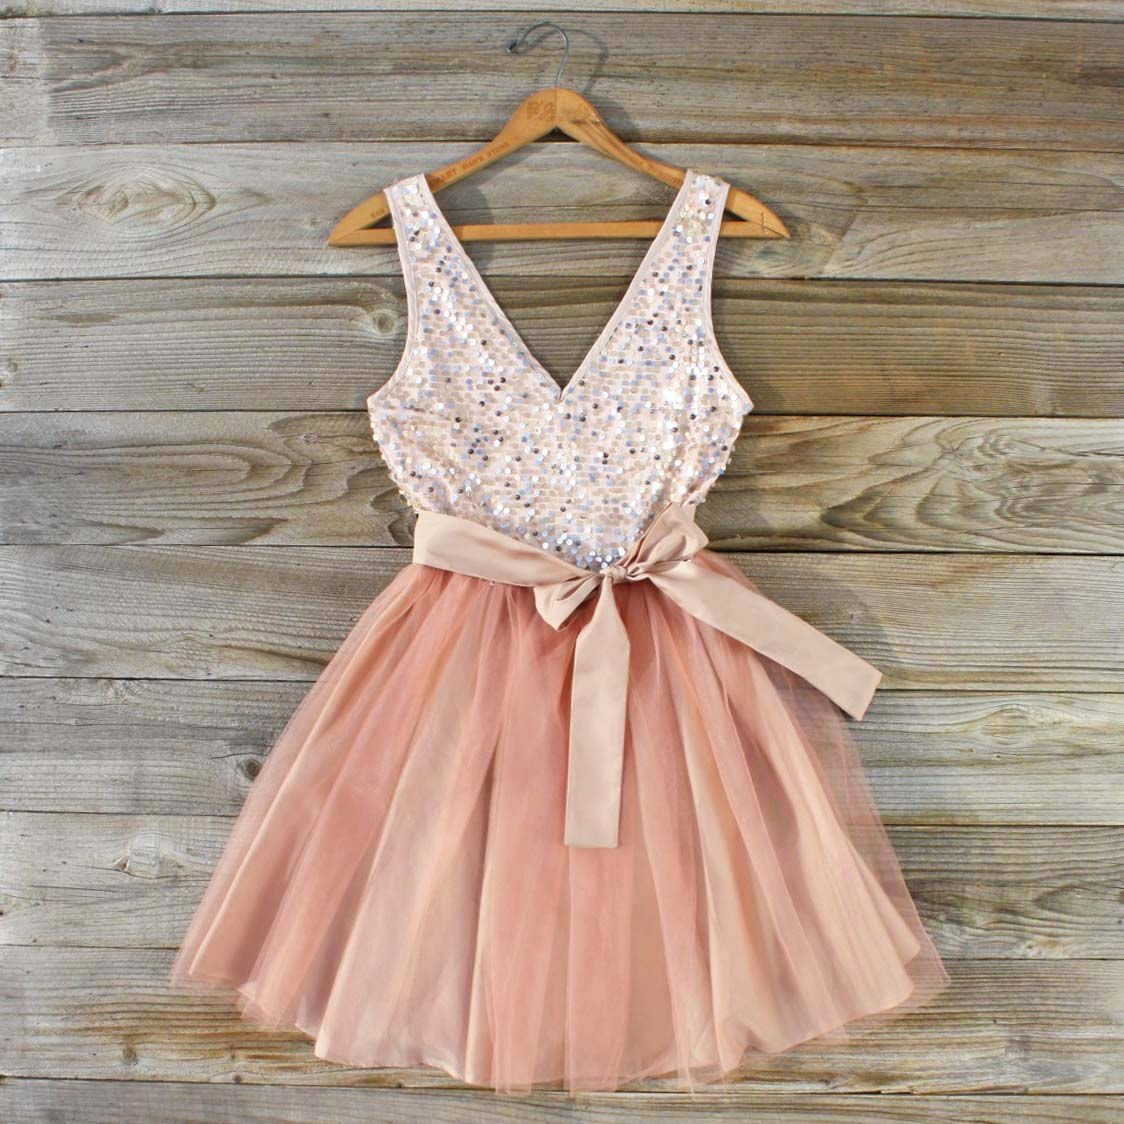 August Glow Dress in Peach from Spool No 72